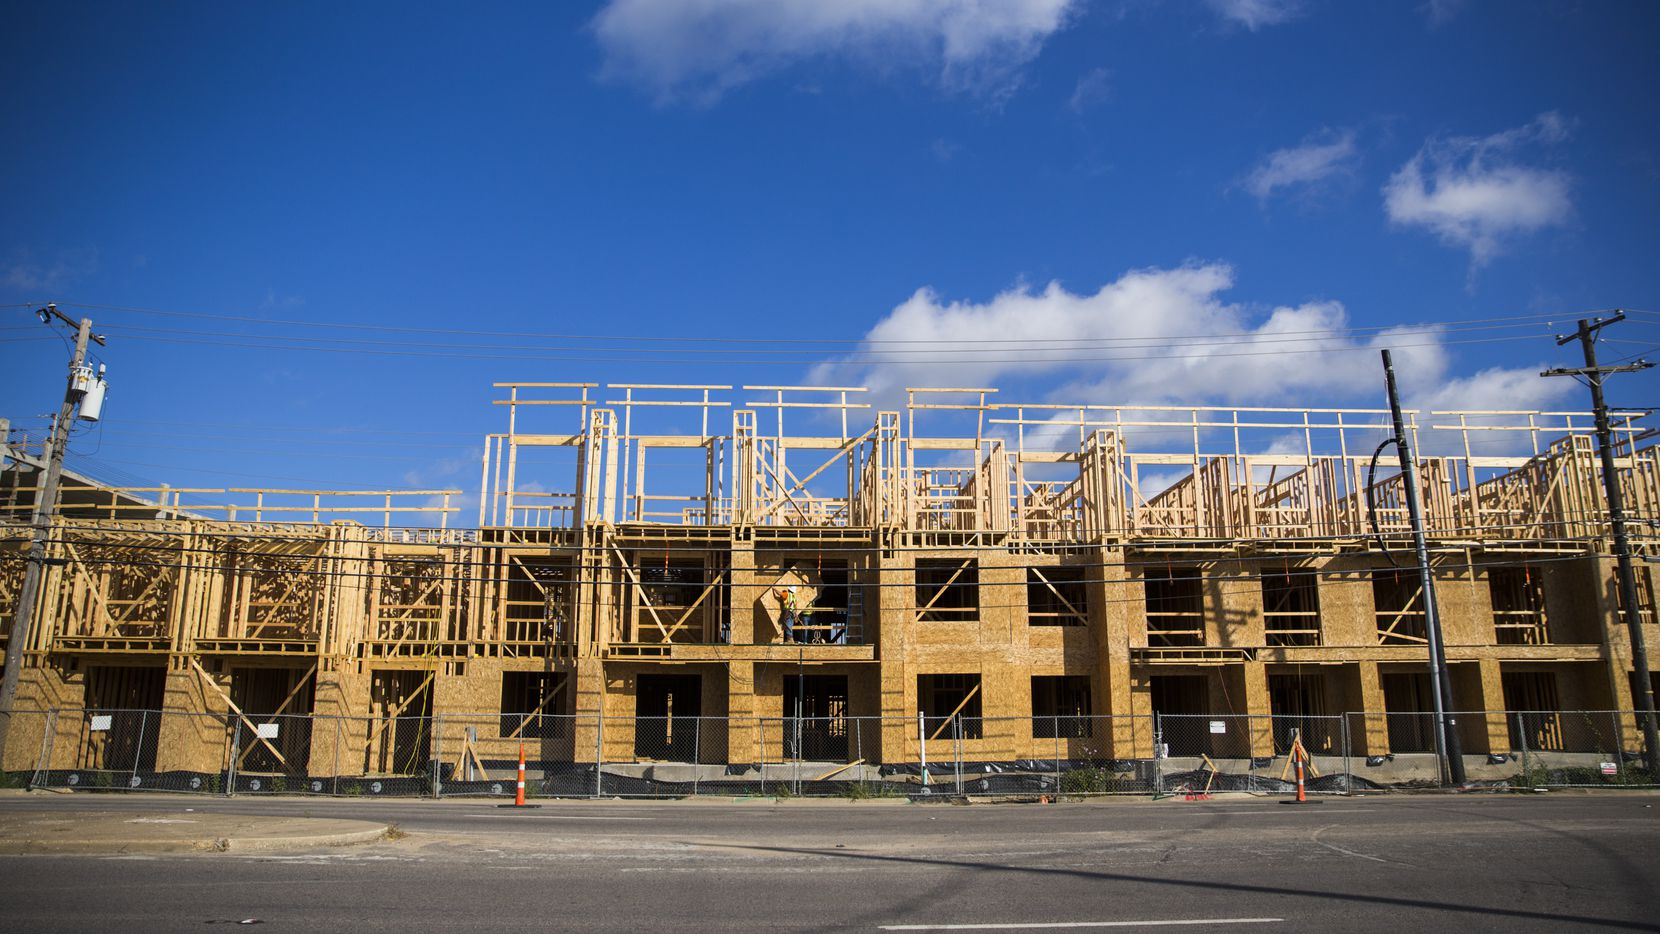 Almost 43,000 apartments are being built in the Dallas-Fort Worth area.